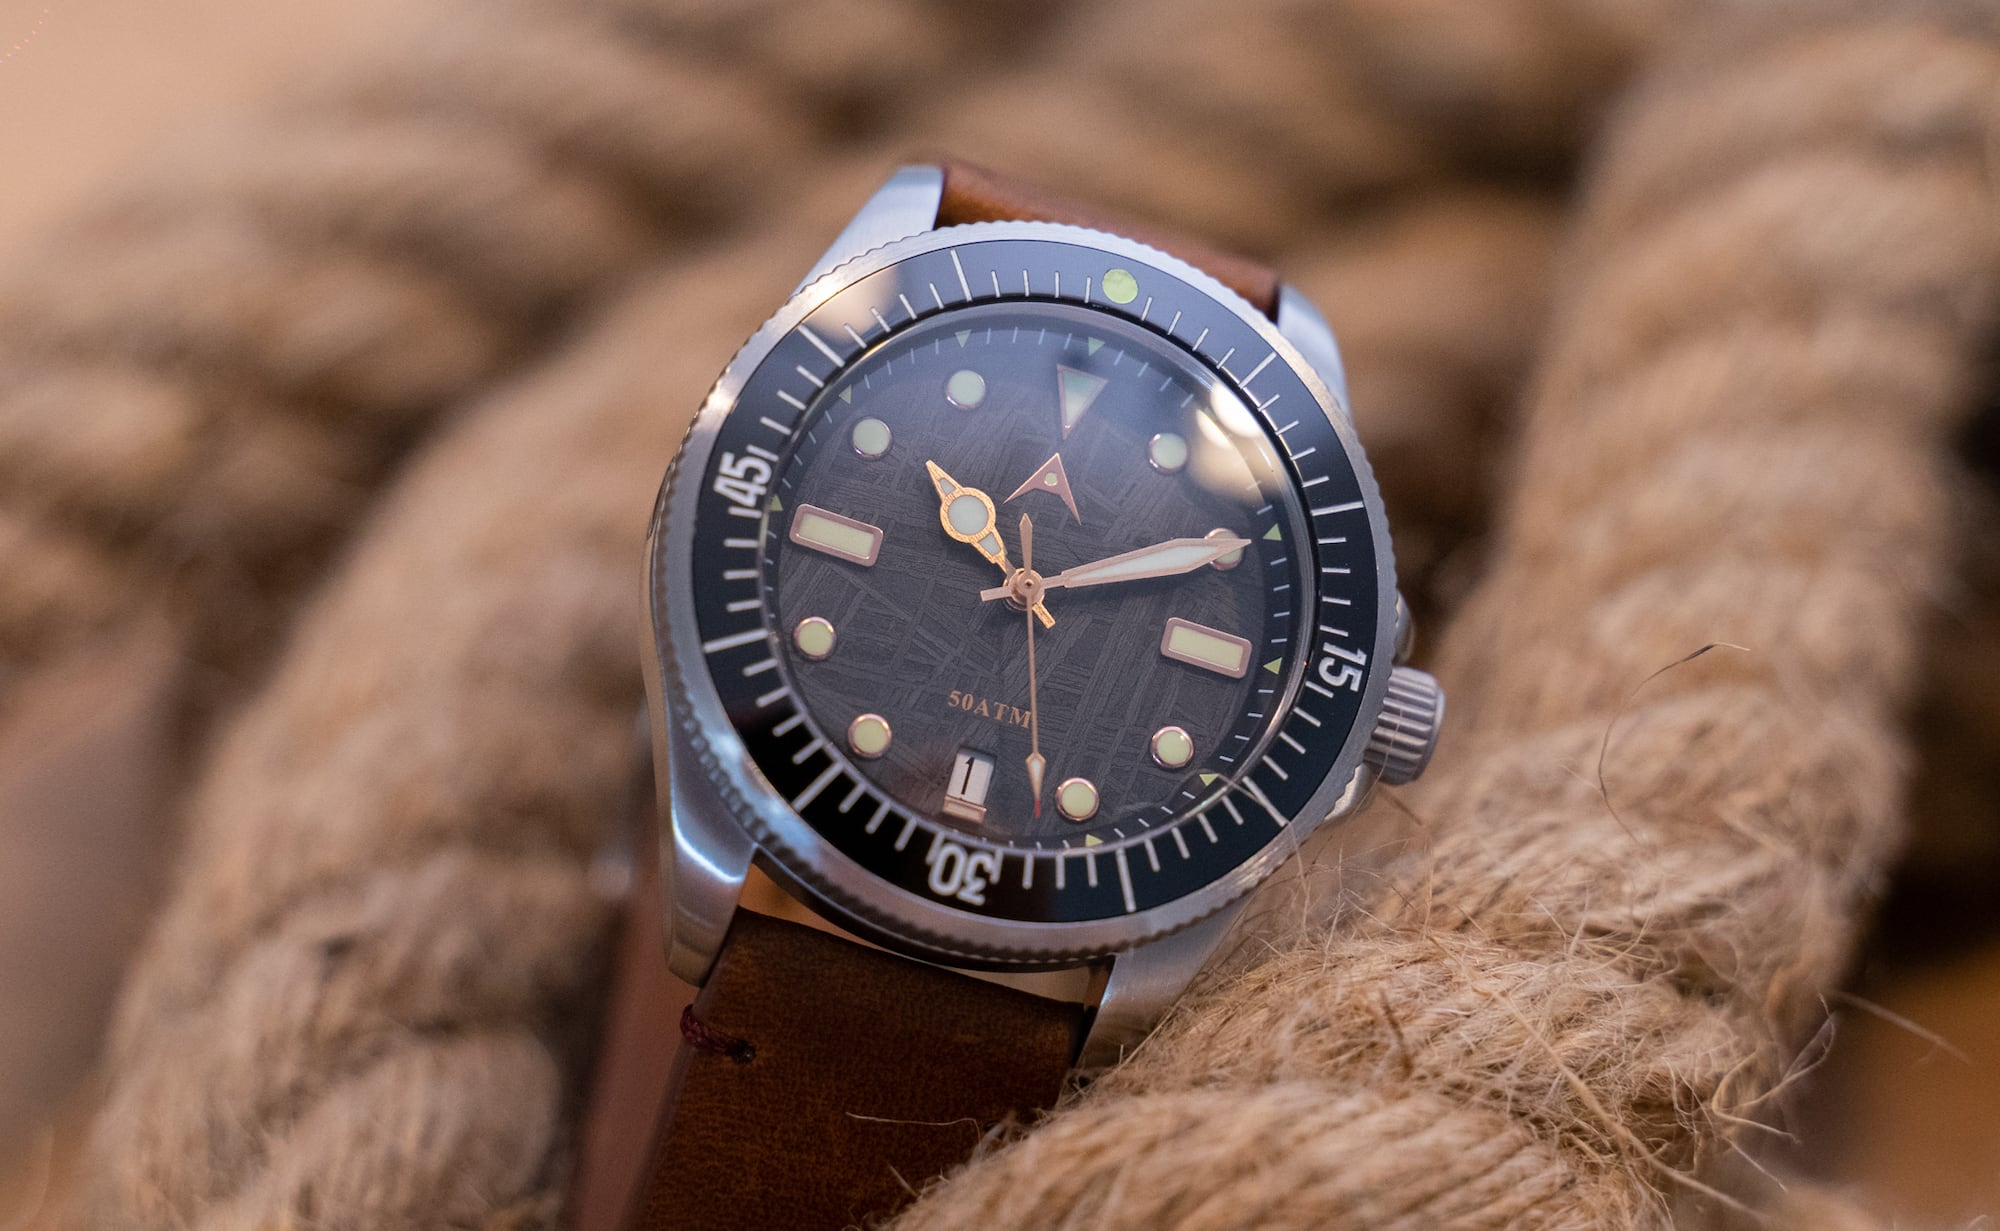 Sea Hunt 500m Retro-Inspired Dive Watch is both traditional and modern